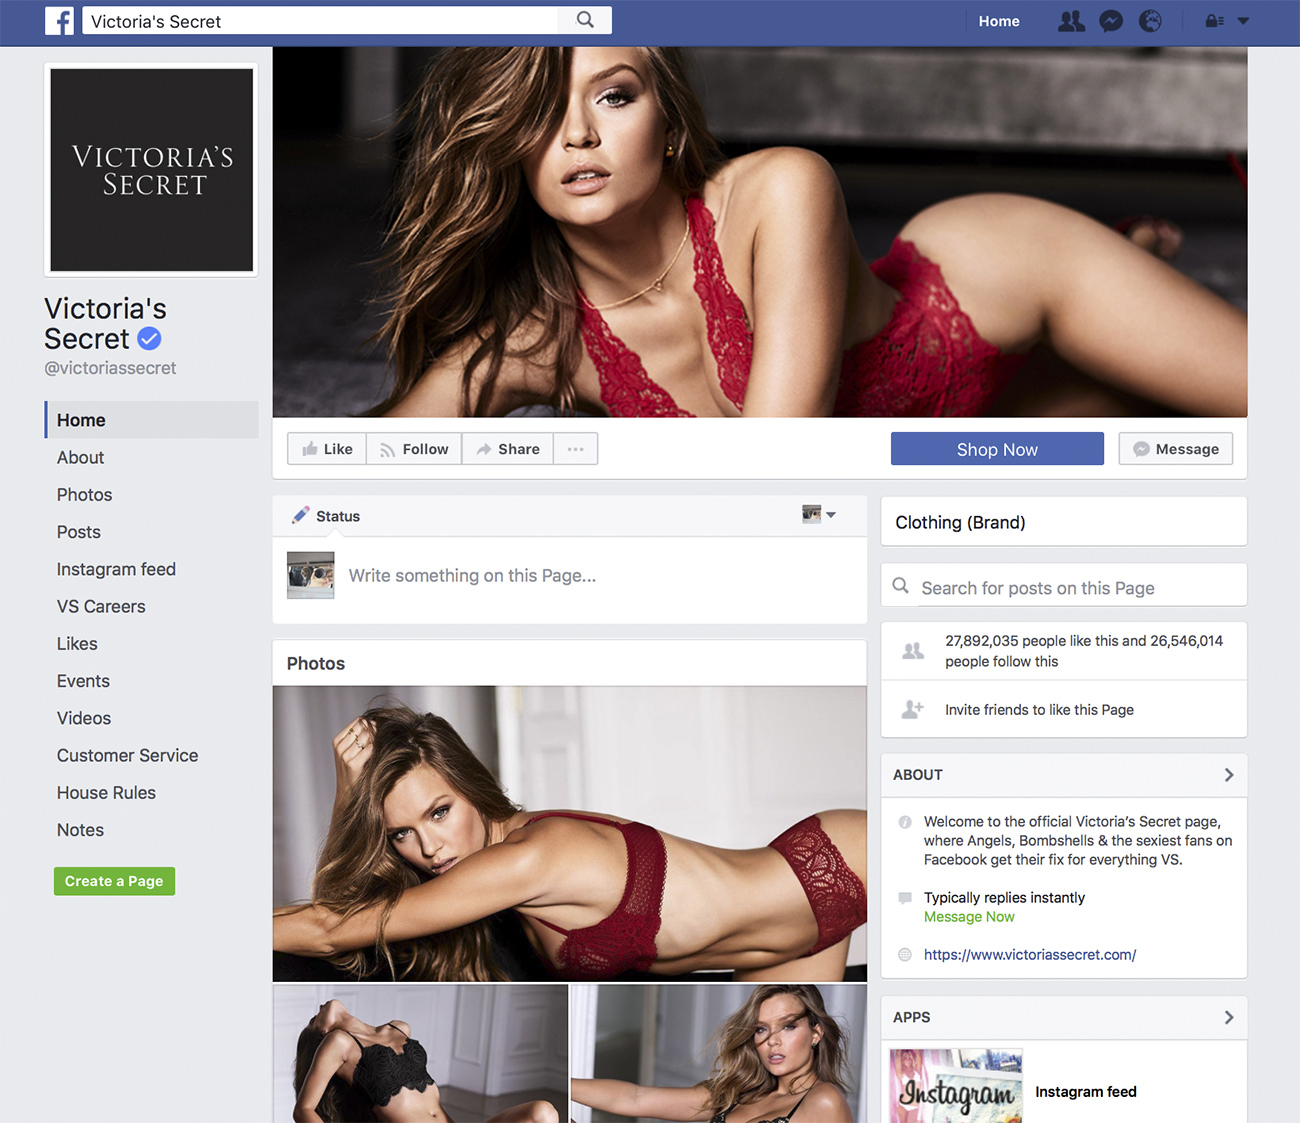 Victoria's Secret Facebook page - Marketing for clothing store